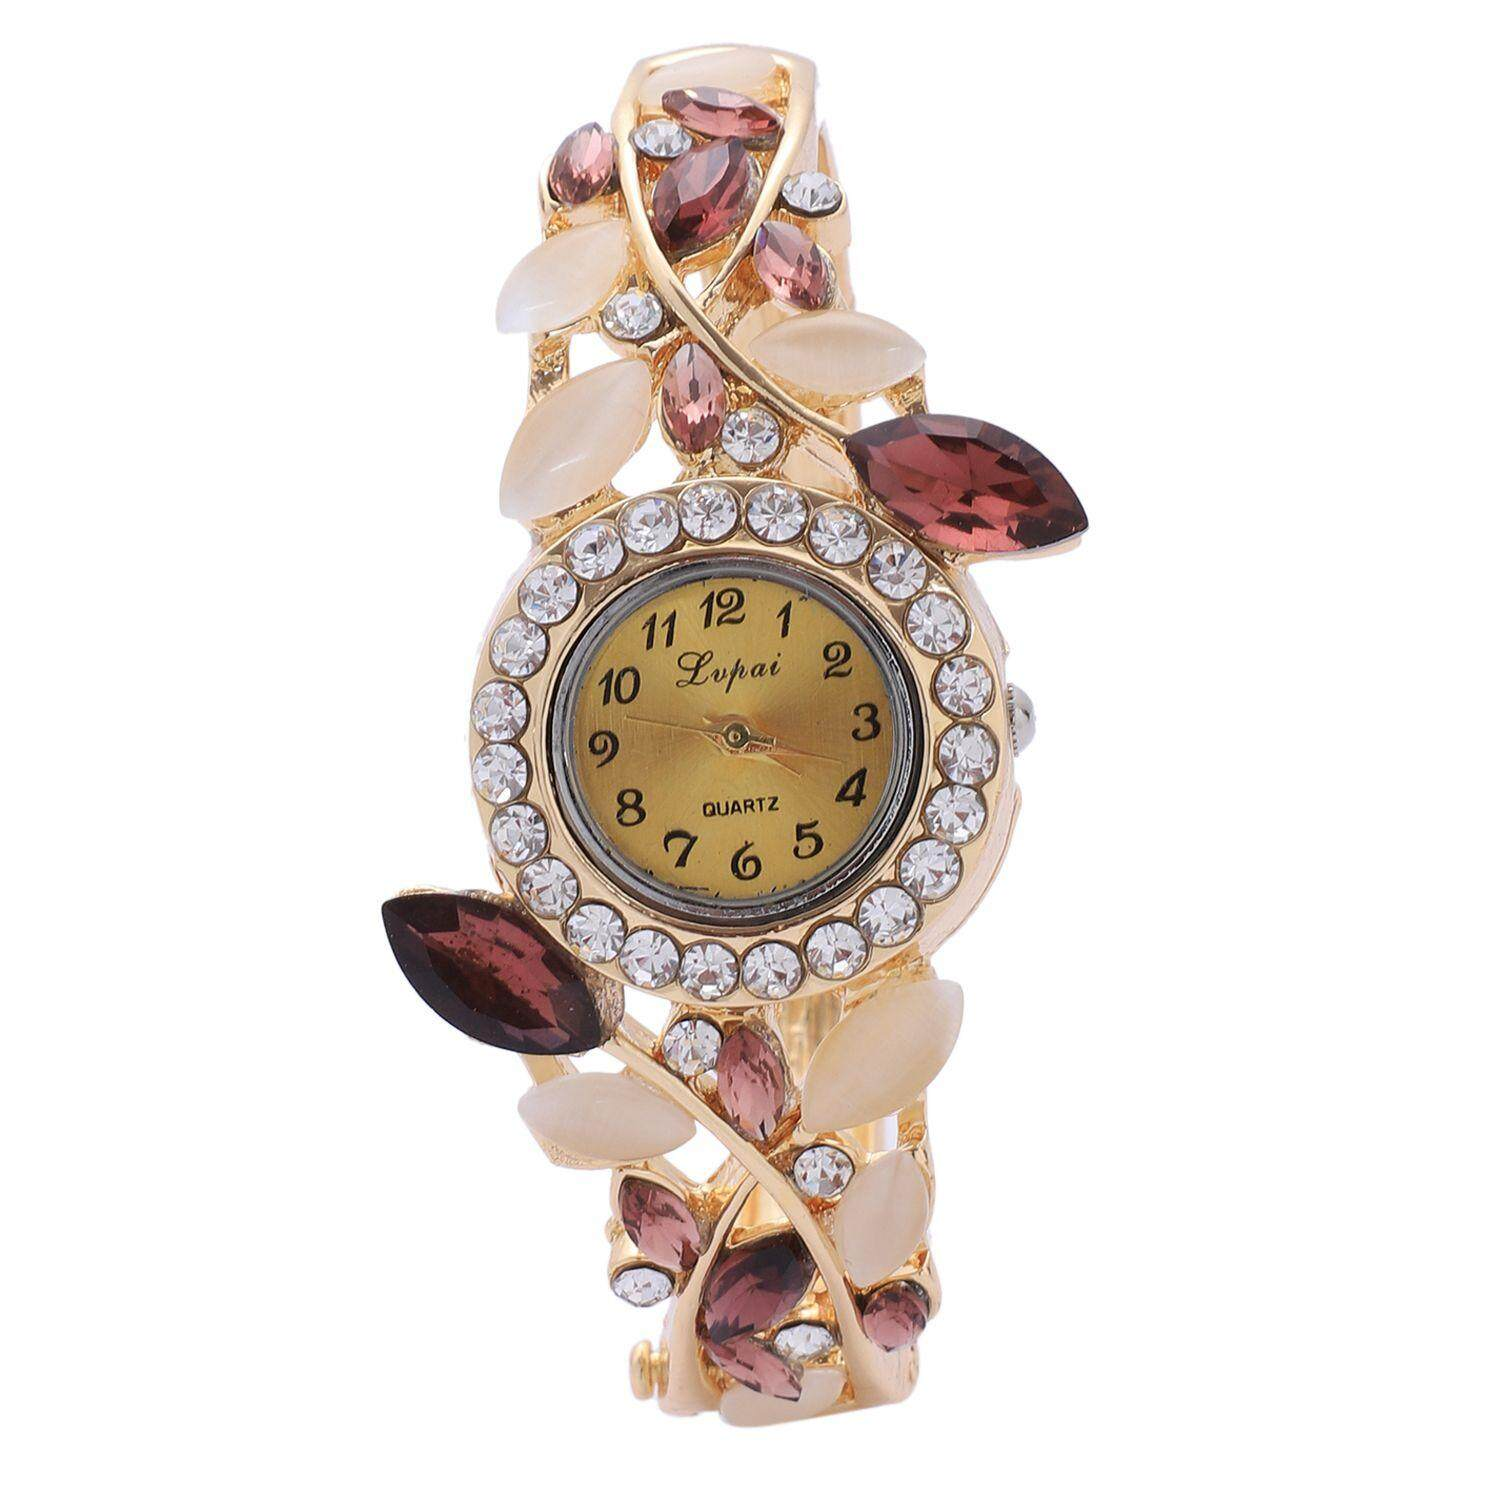 Lvpai Fashion Vintage Women Dress Watches Colorful Crystal Women Bracelet Watch Wristwatch Casual Gift Dress Clock Watches, P054 Purple Malaysia